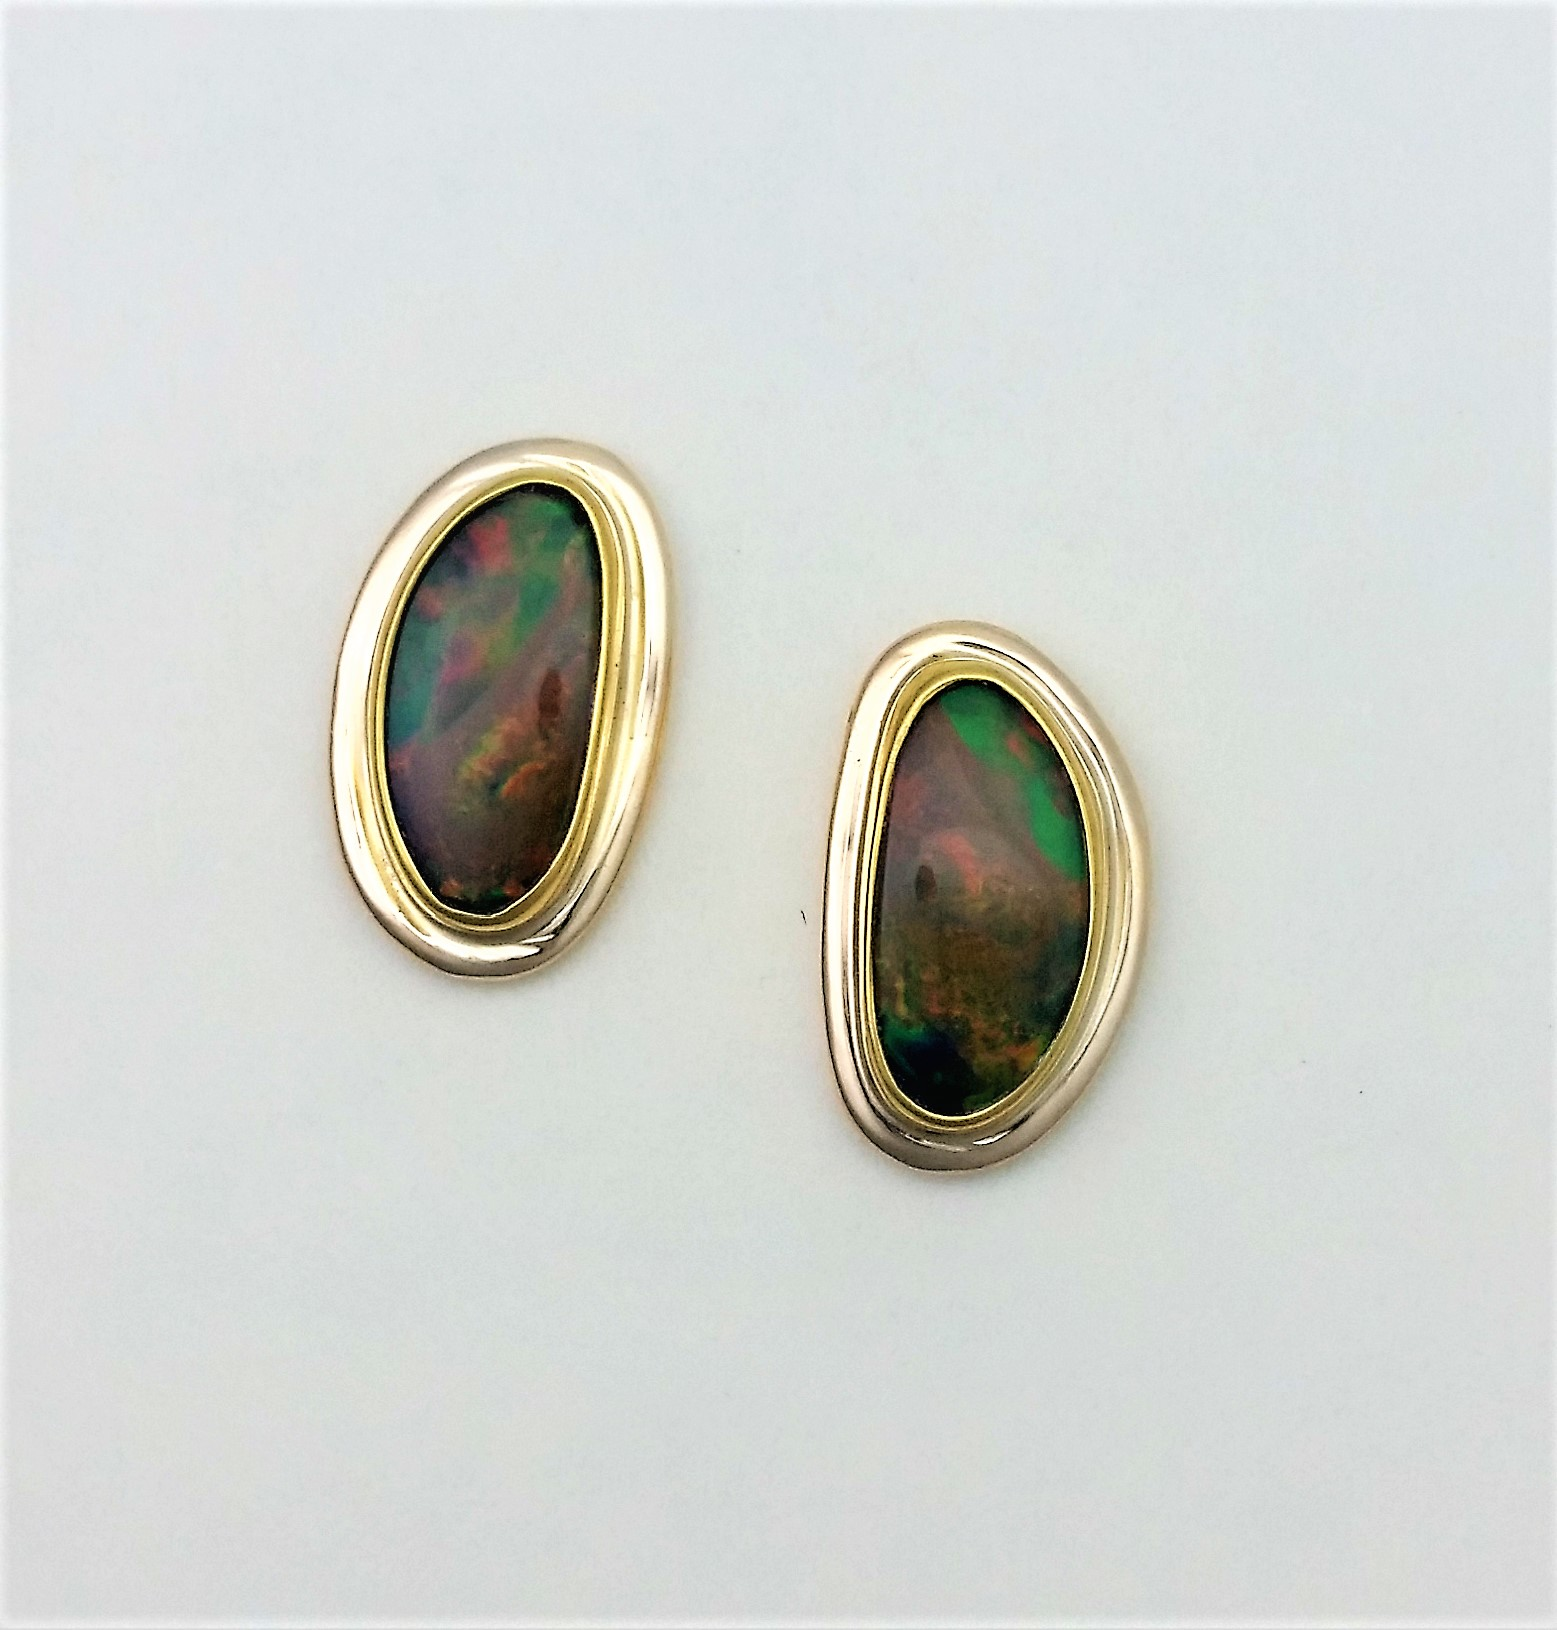 choose elegant jewelry amazon com stud for gold earrings bingefashion white opal dbafzsm looks oval